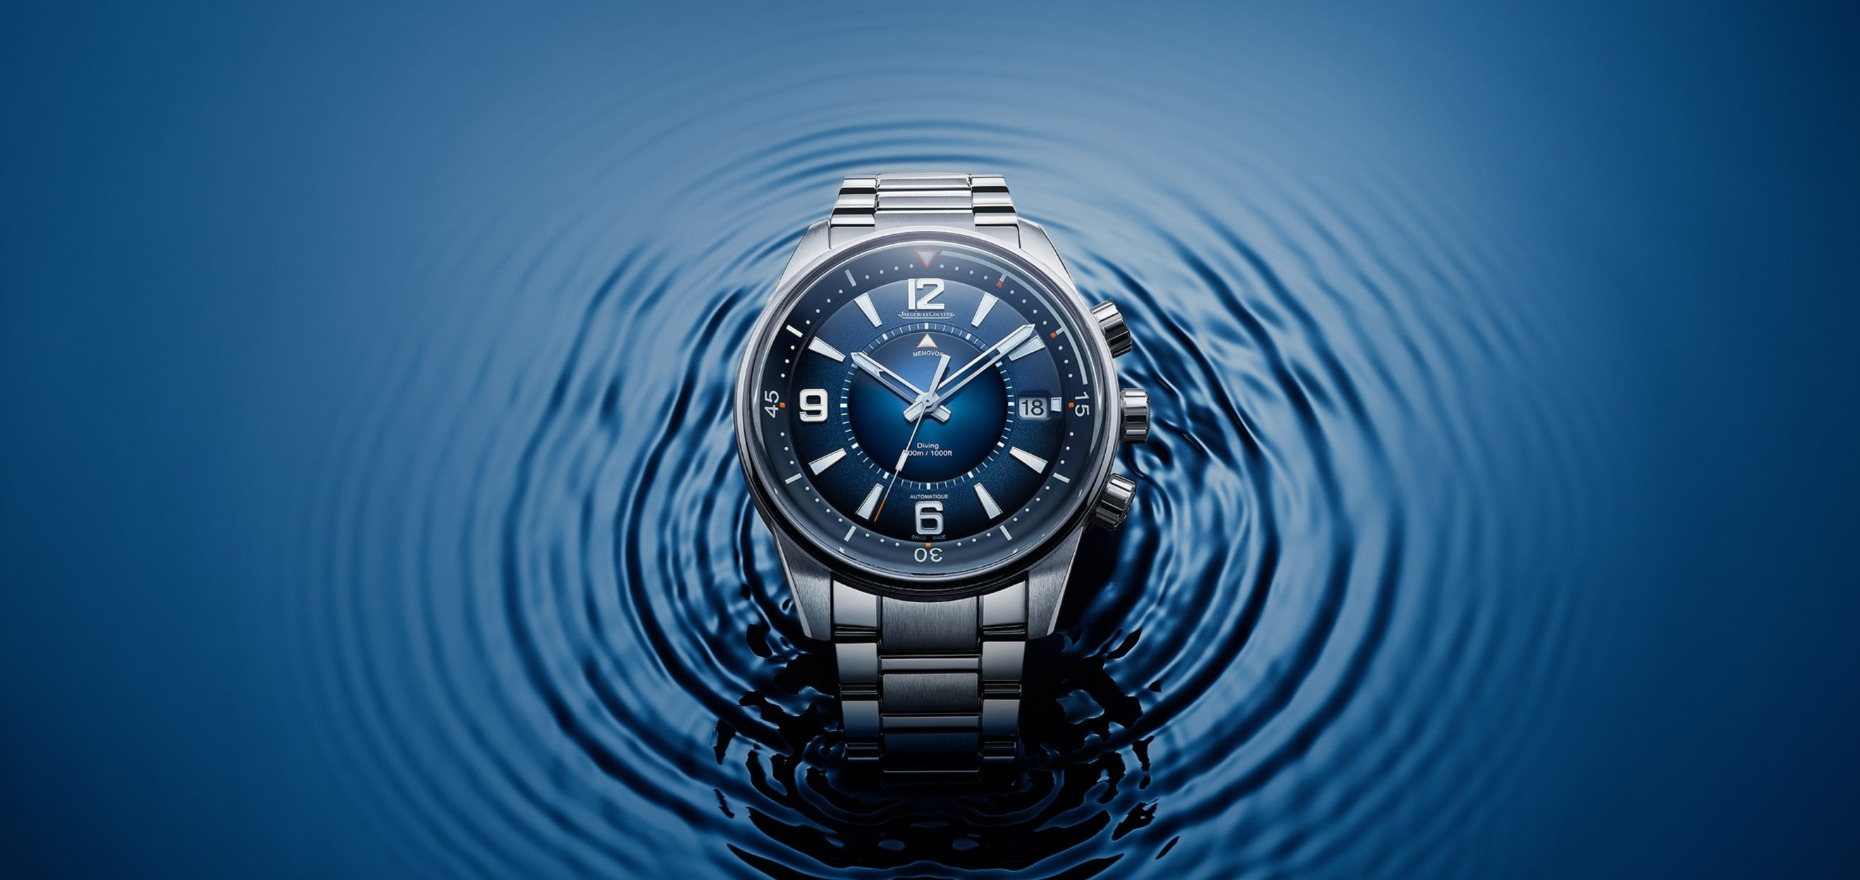 Jaeger-LeCoultre expands its Polaris collection with new Mariner models